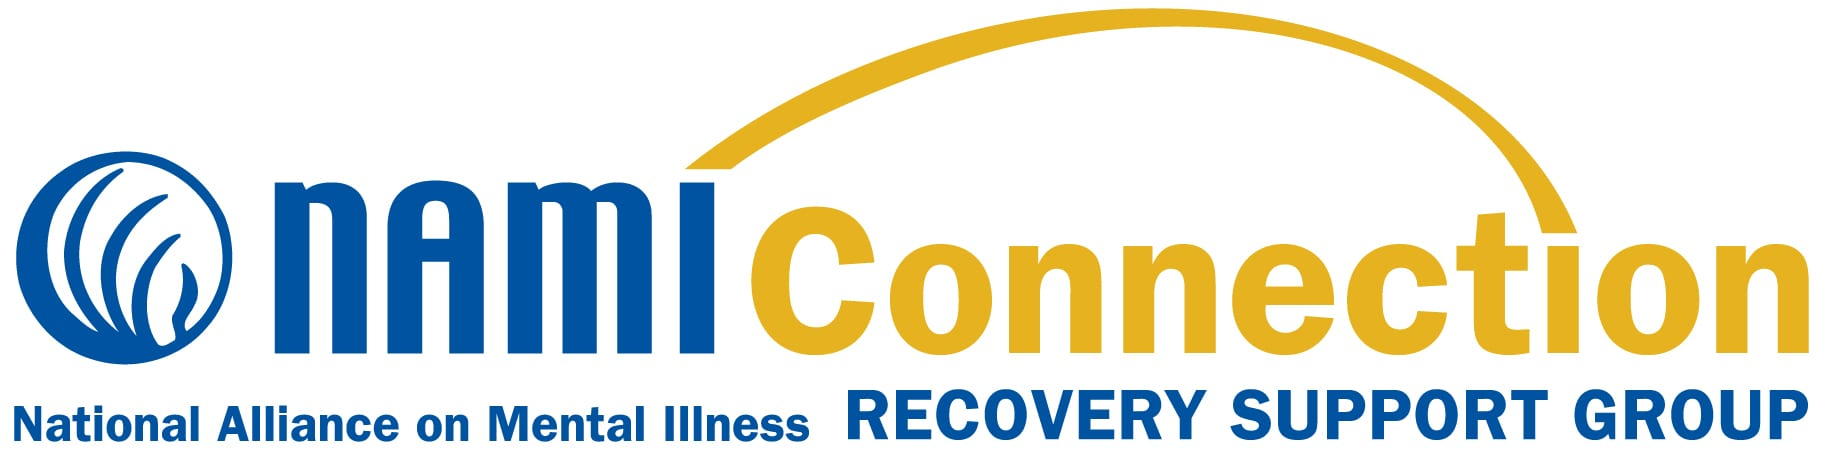 Connection Support Groups logo